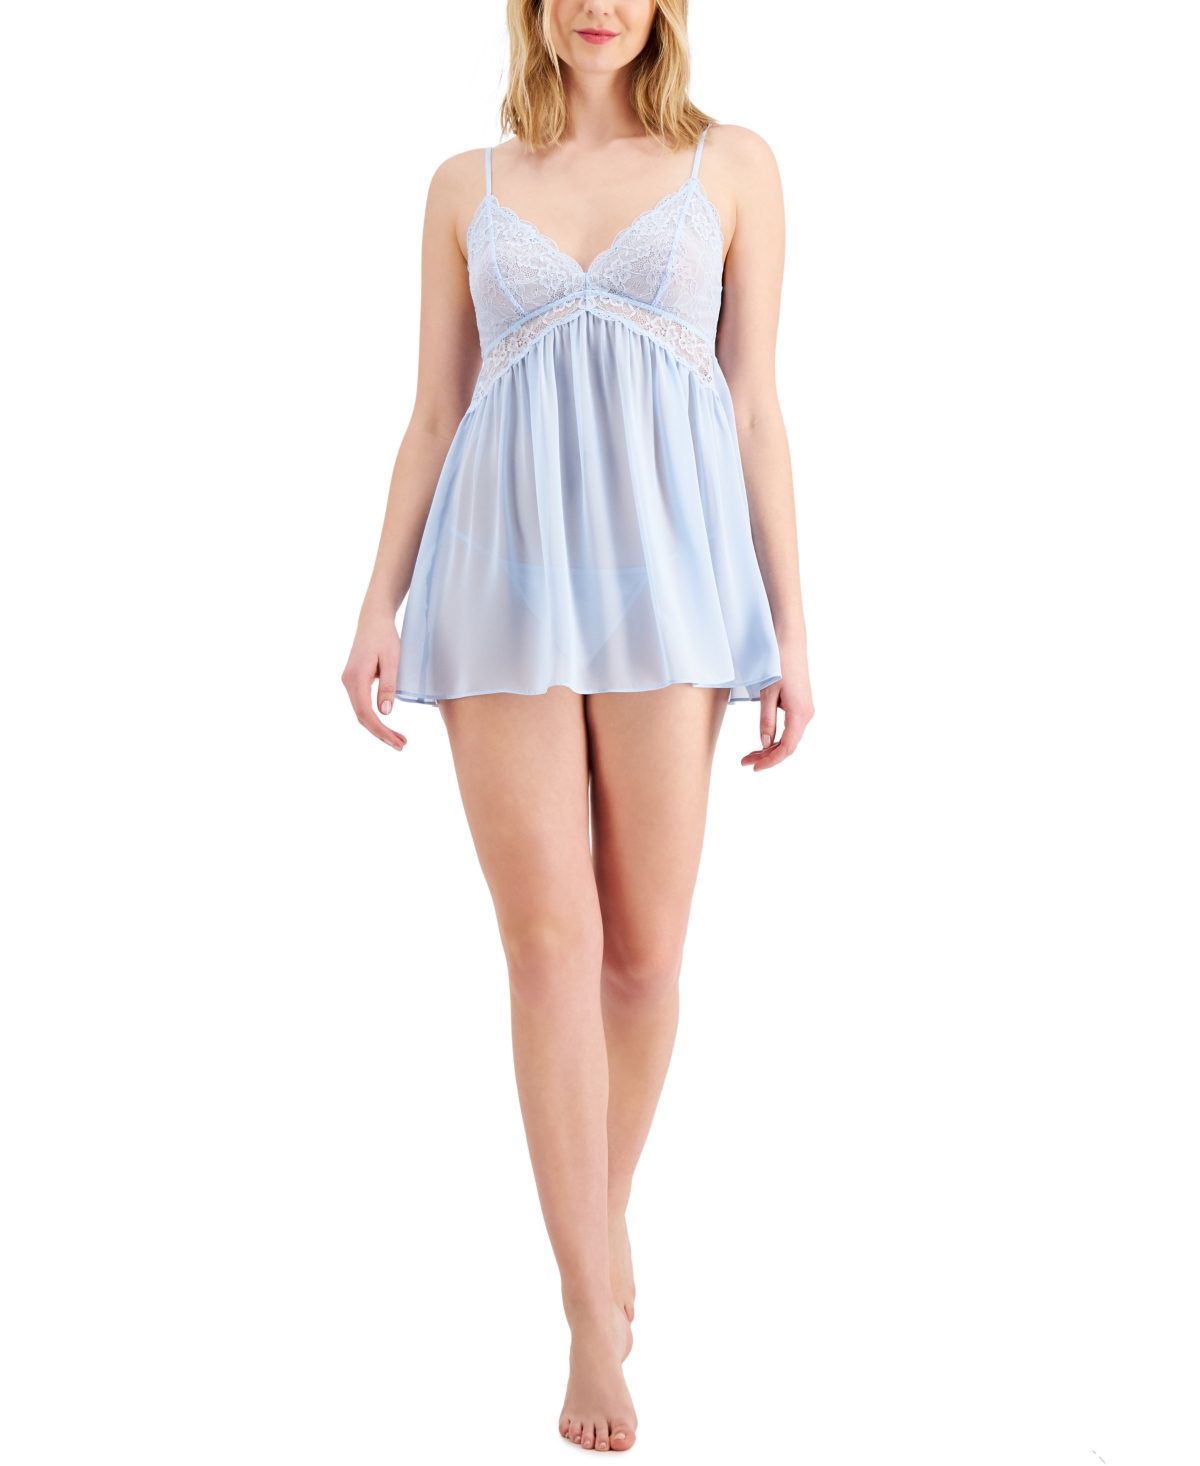 Inc International Concepts Chiffon Babydoll Nightgown & Thong 2pc Lingerie Set, Created for Macy's